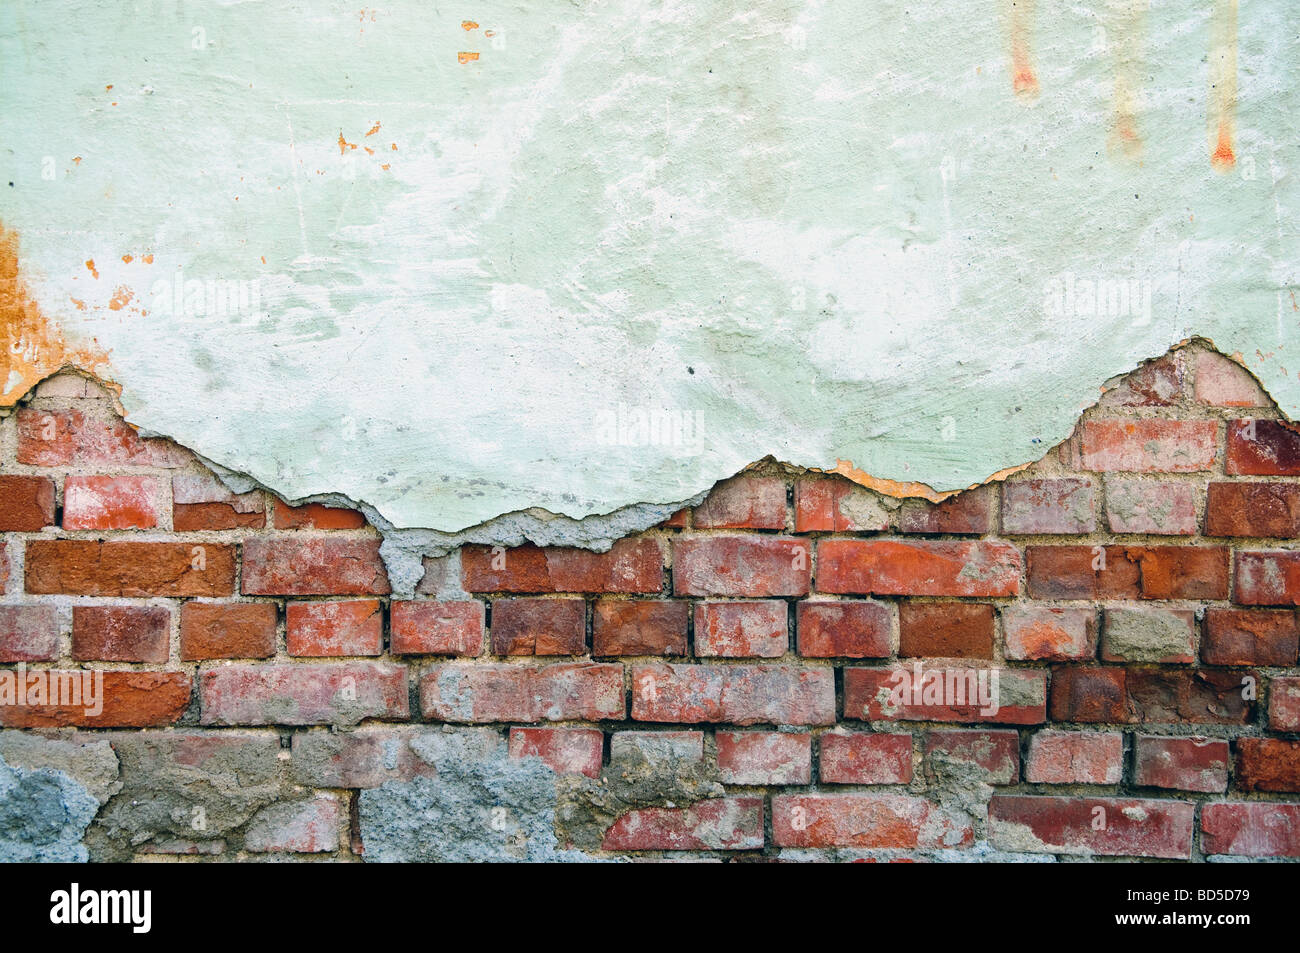 weathered obsolete old brick wall - Stock Image